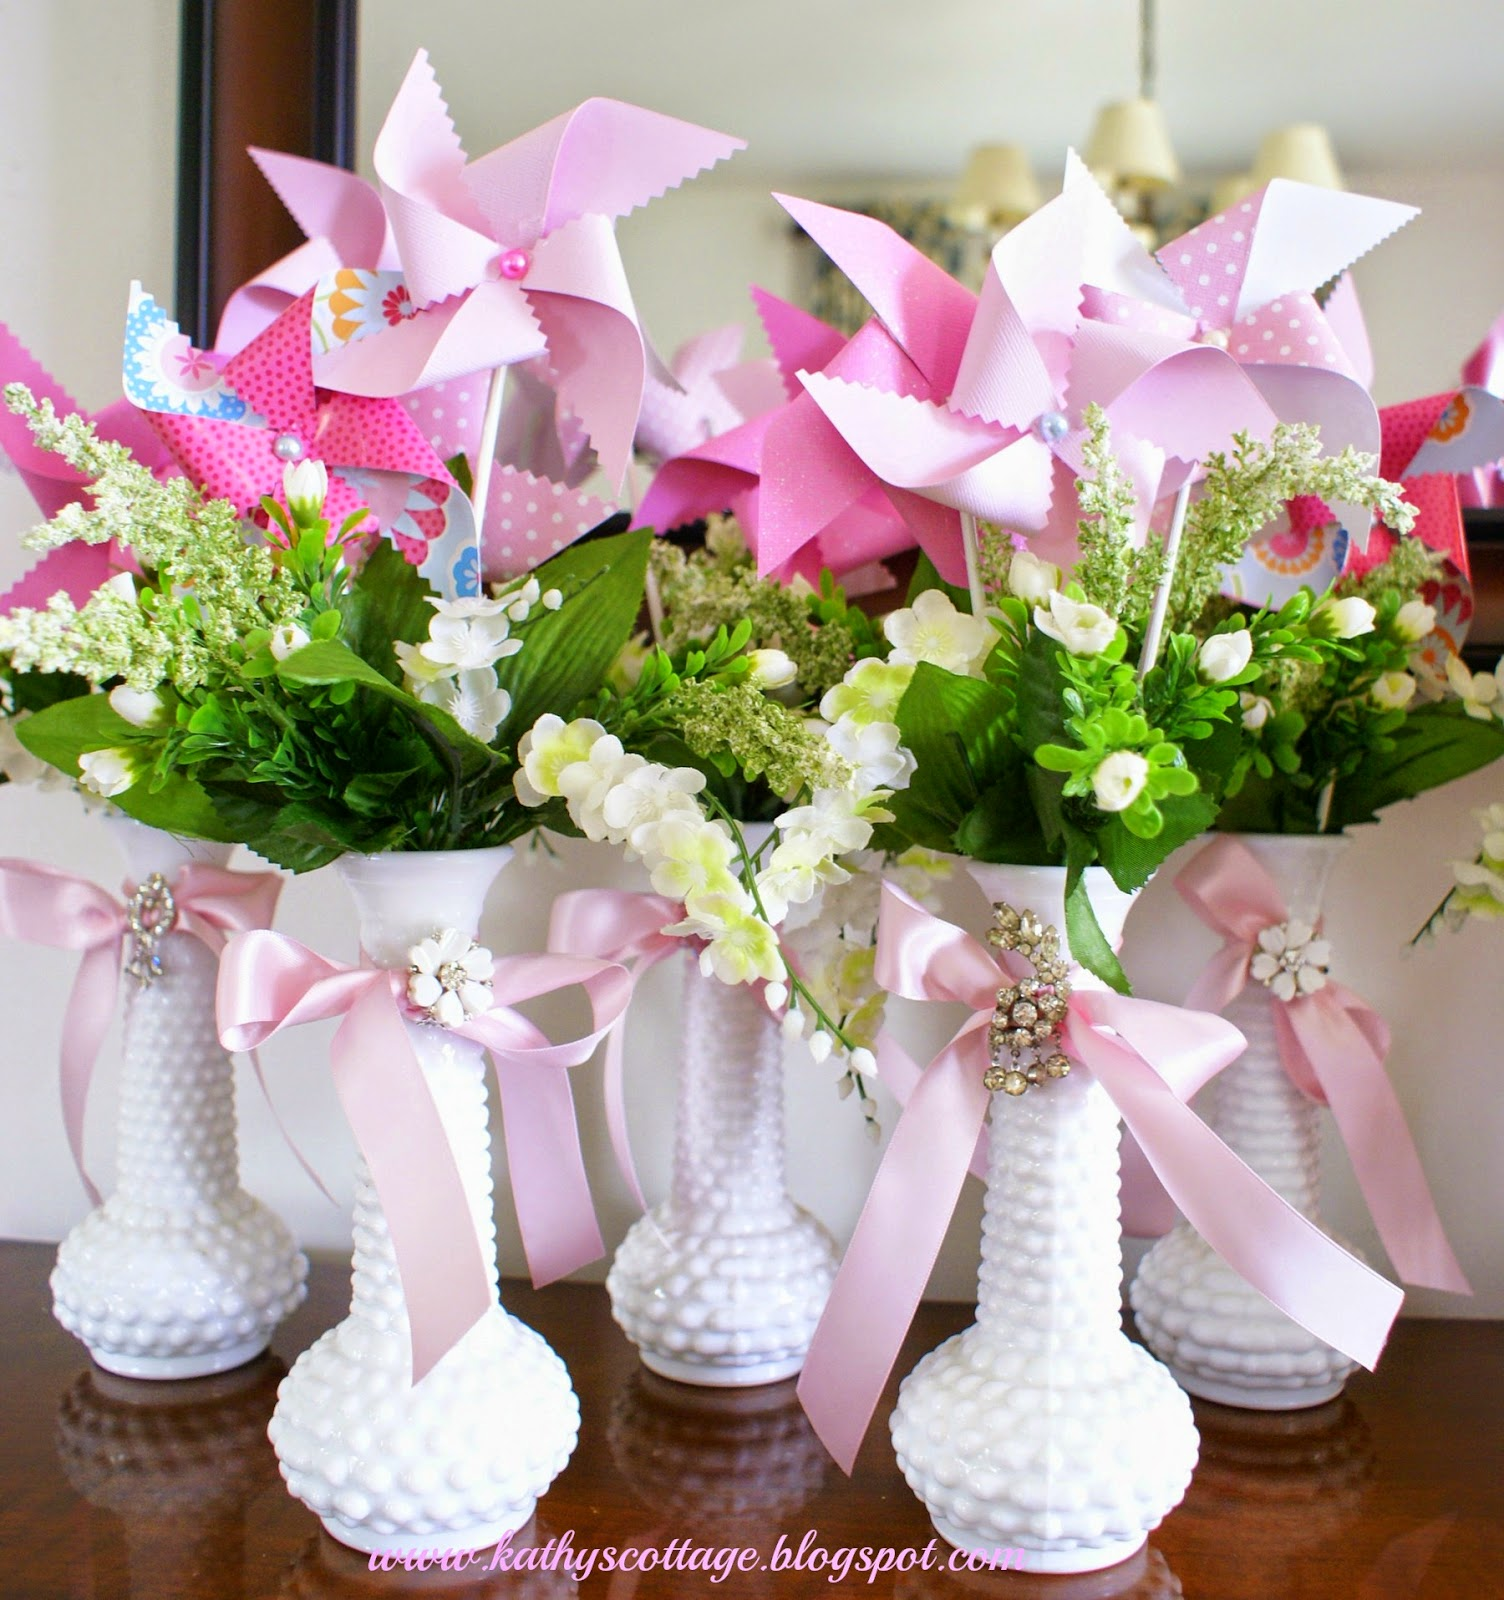 Kathys Cottage: Budget Wedding And Bridal Shower Centerpieces